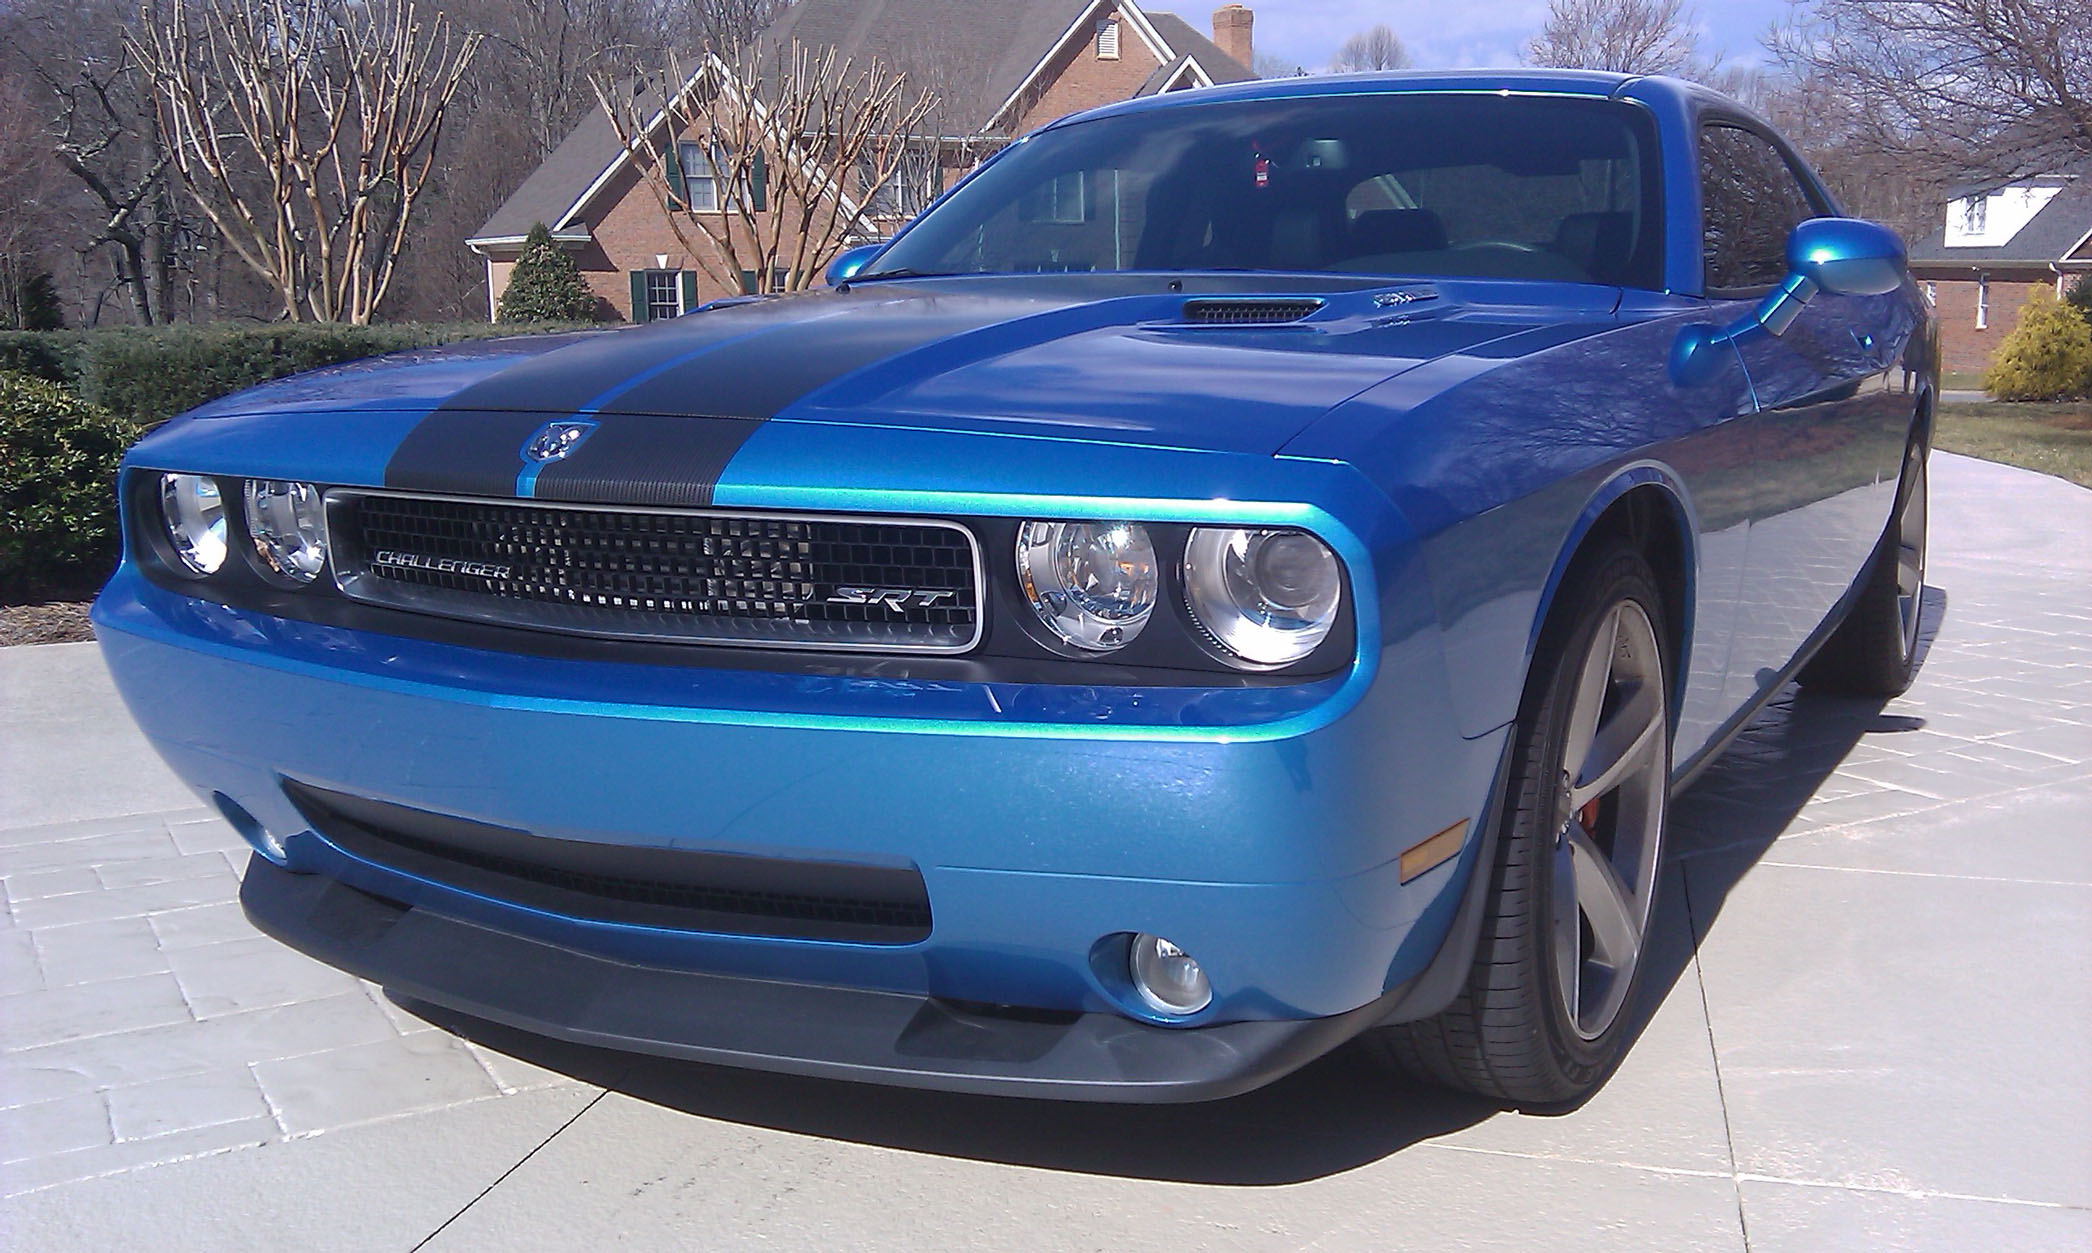 2010 Dodge Challenger SRT8 B5 Blue Supercharger